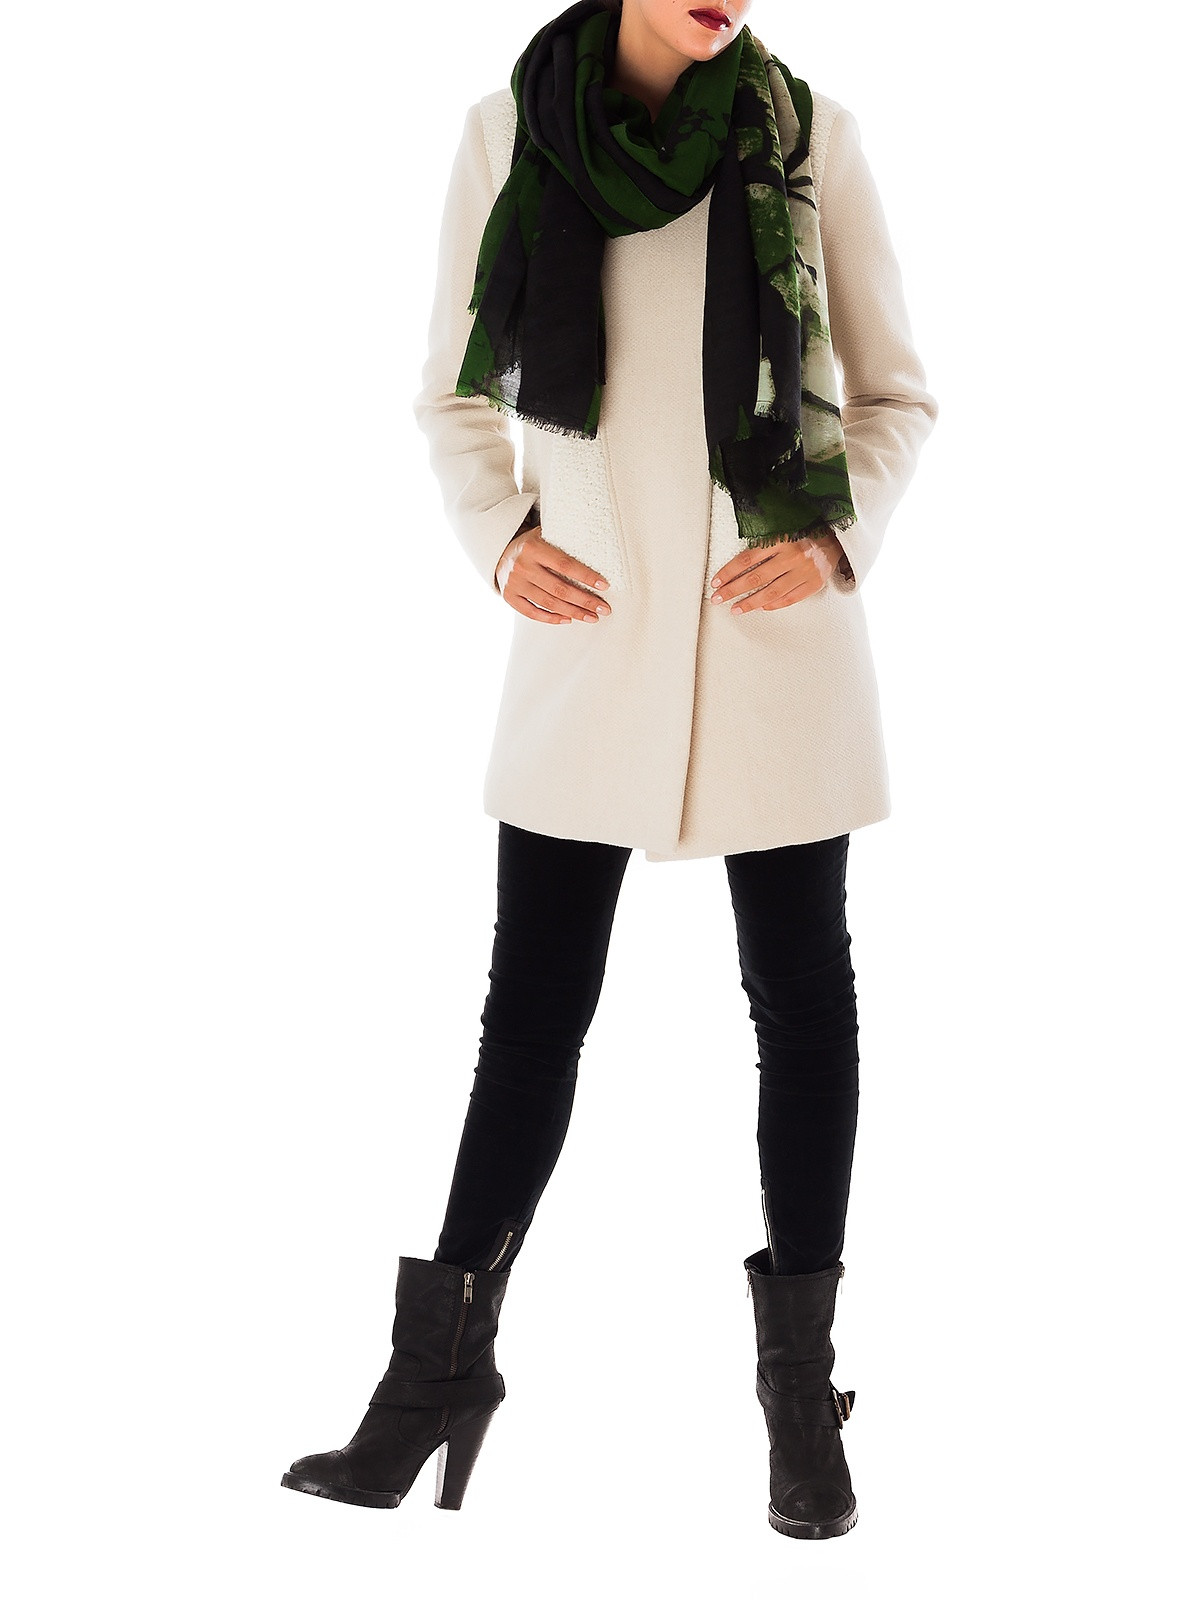 E-MOONLIGHT GREEN SCARF | GIRISSIMA.COM - Collectible fashion to love and to last